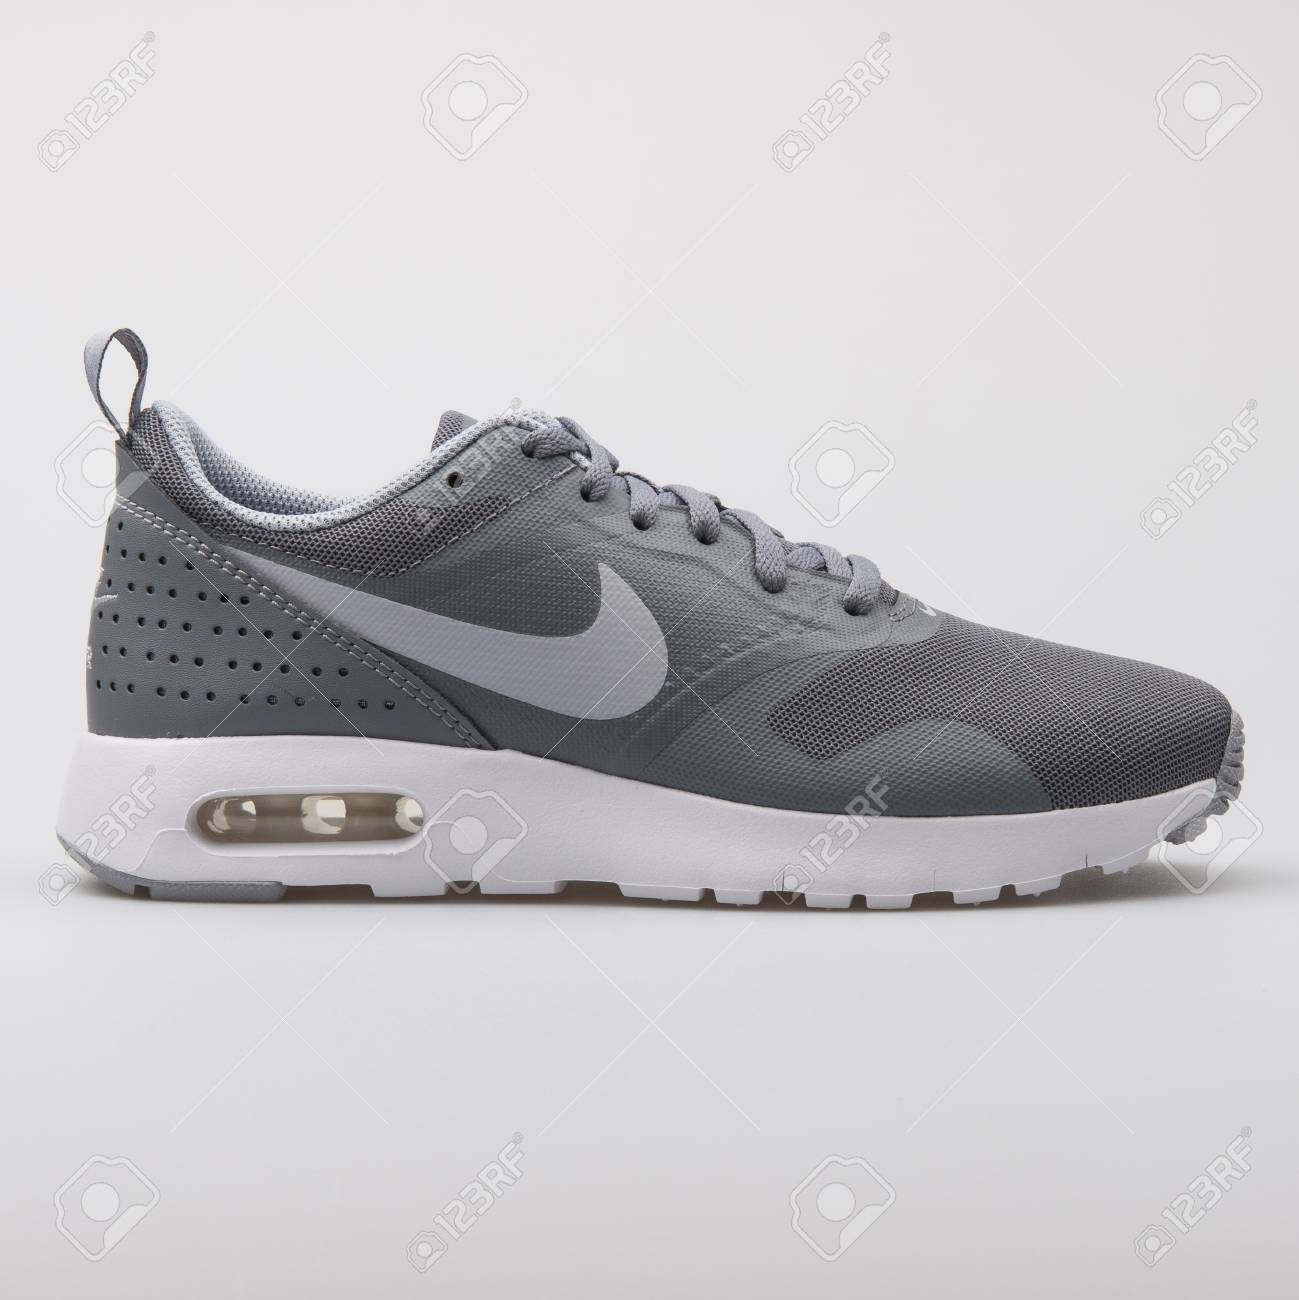 detailed look 53e62 d05f9 VIENNA, AUSTRIA - AUGUST 7, 2017: Nike Air Max Tavas grey and..